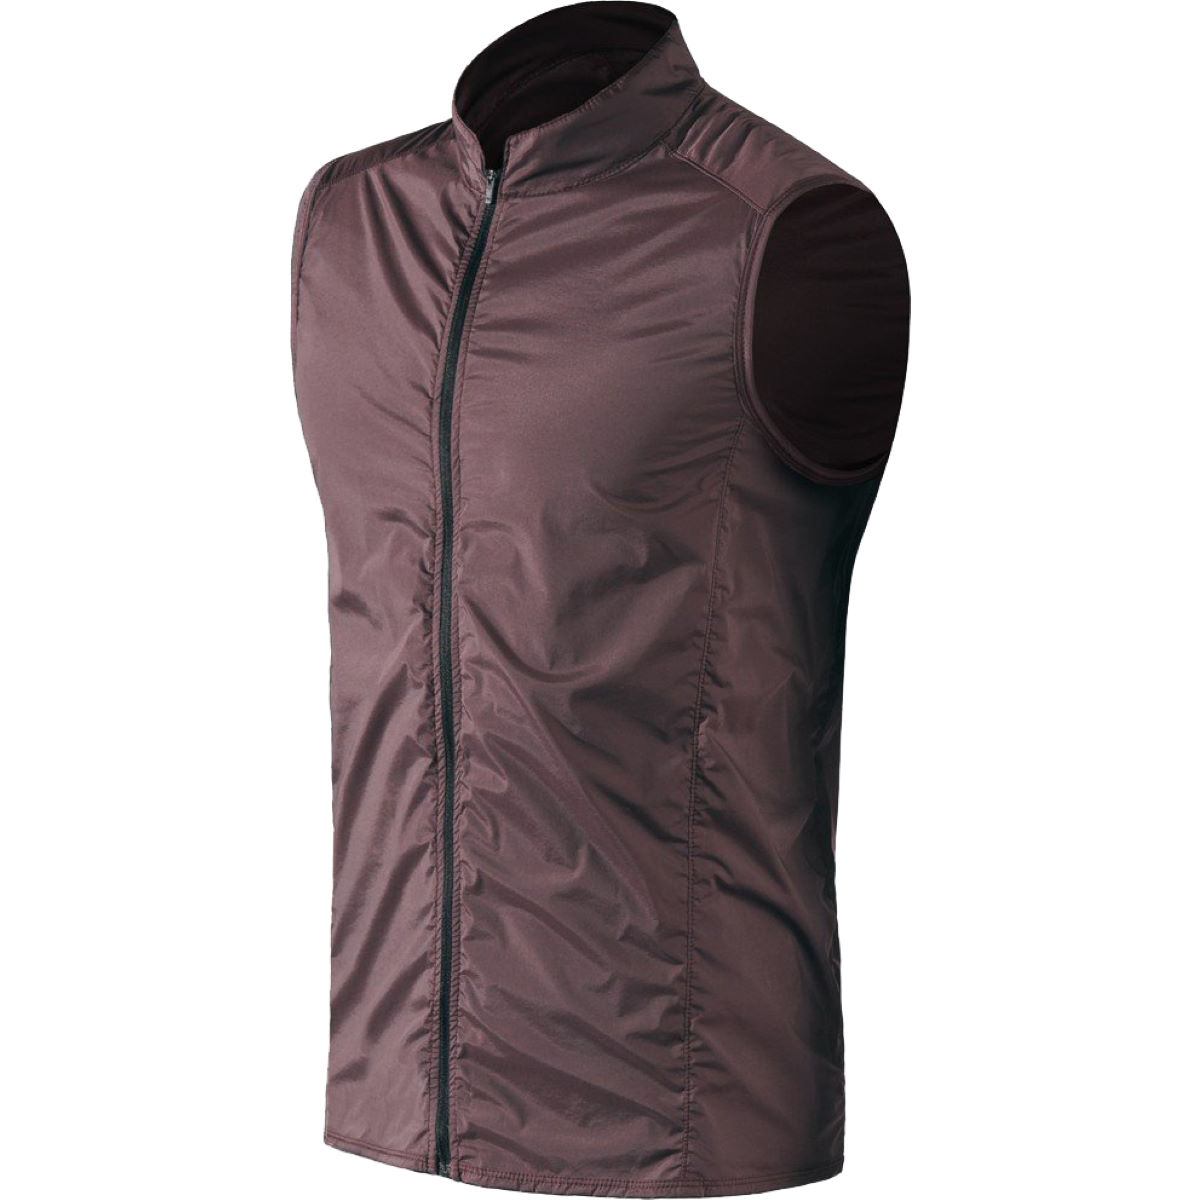 Gilet Acre Supply The Interval (sans manches) - L Burgundy